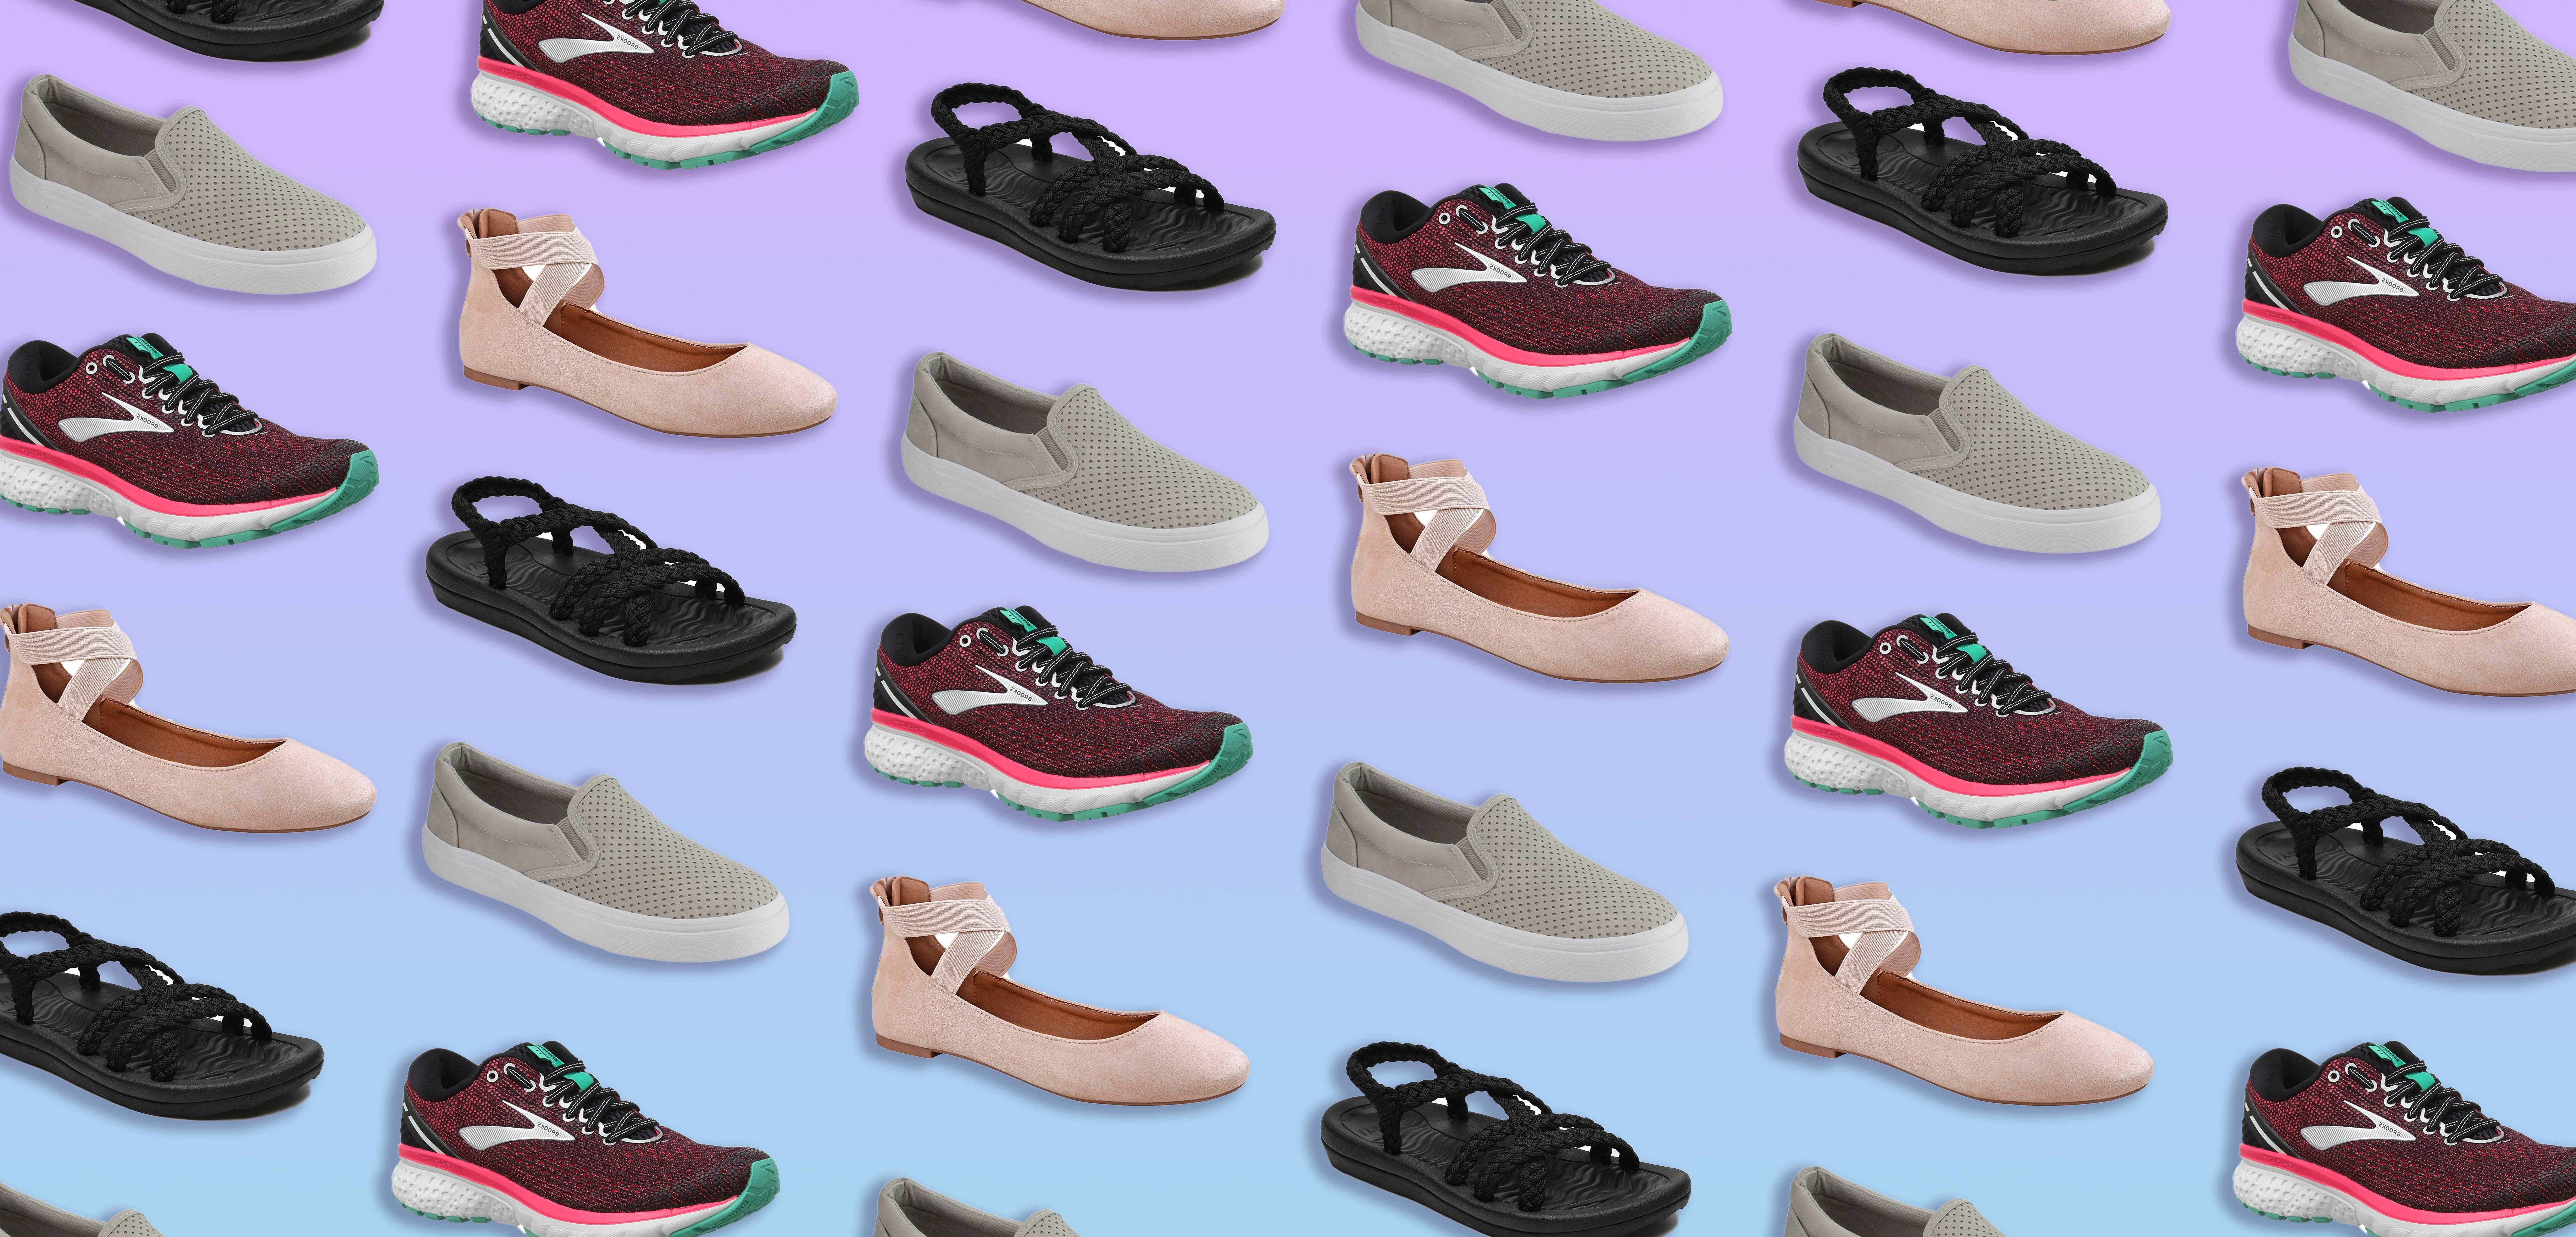 2281f5a93 The 6 Best Shoes For Bunions